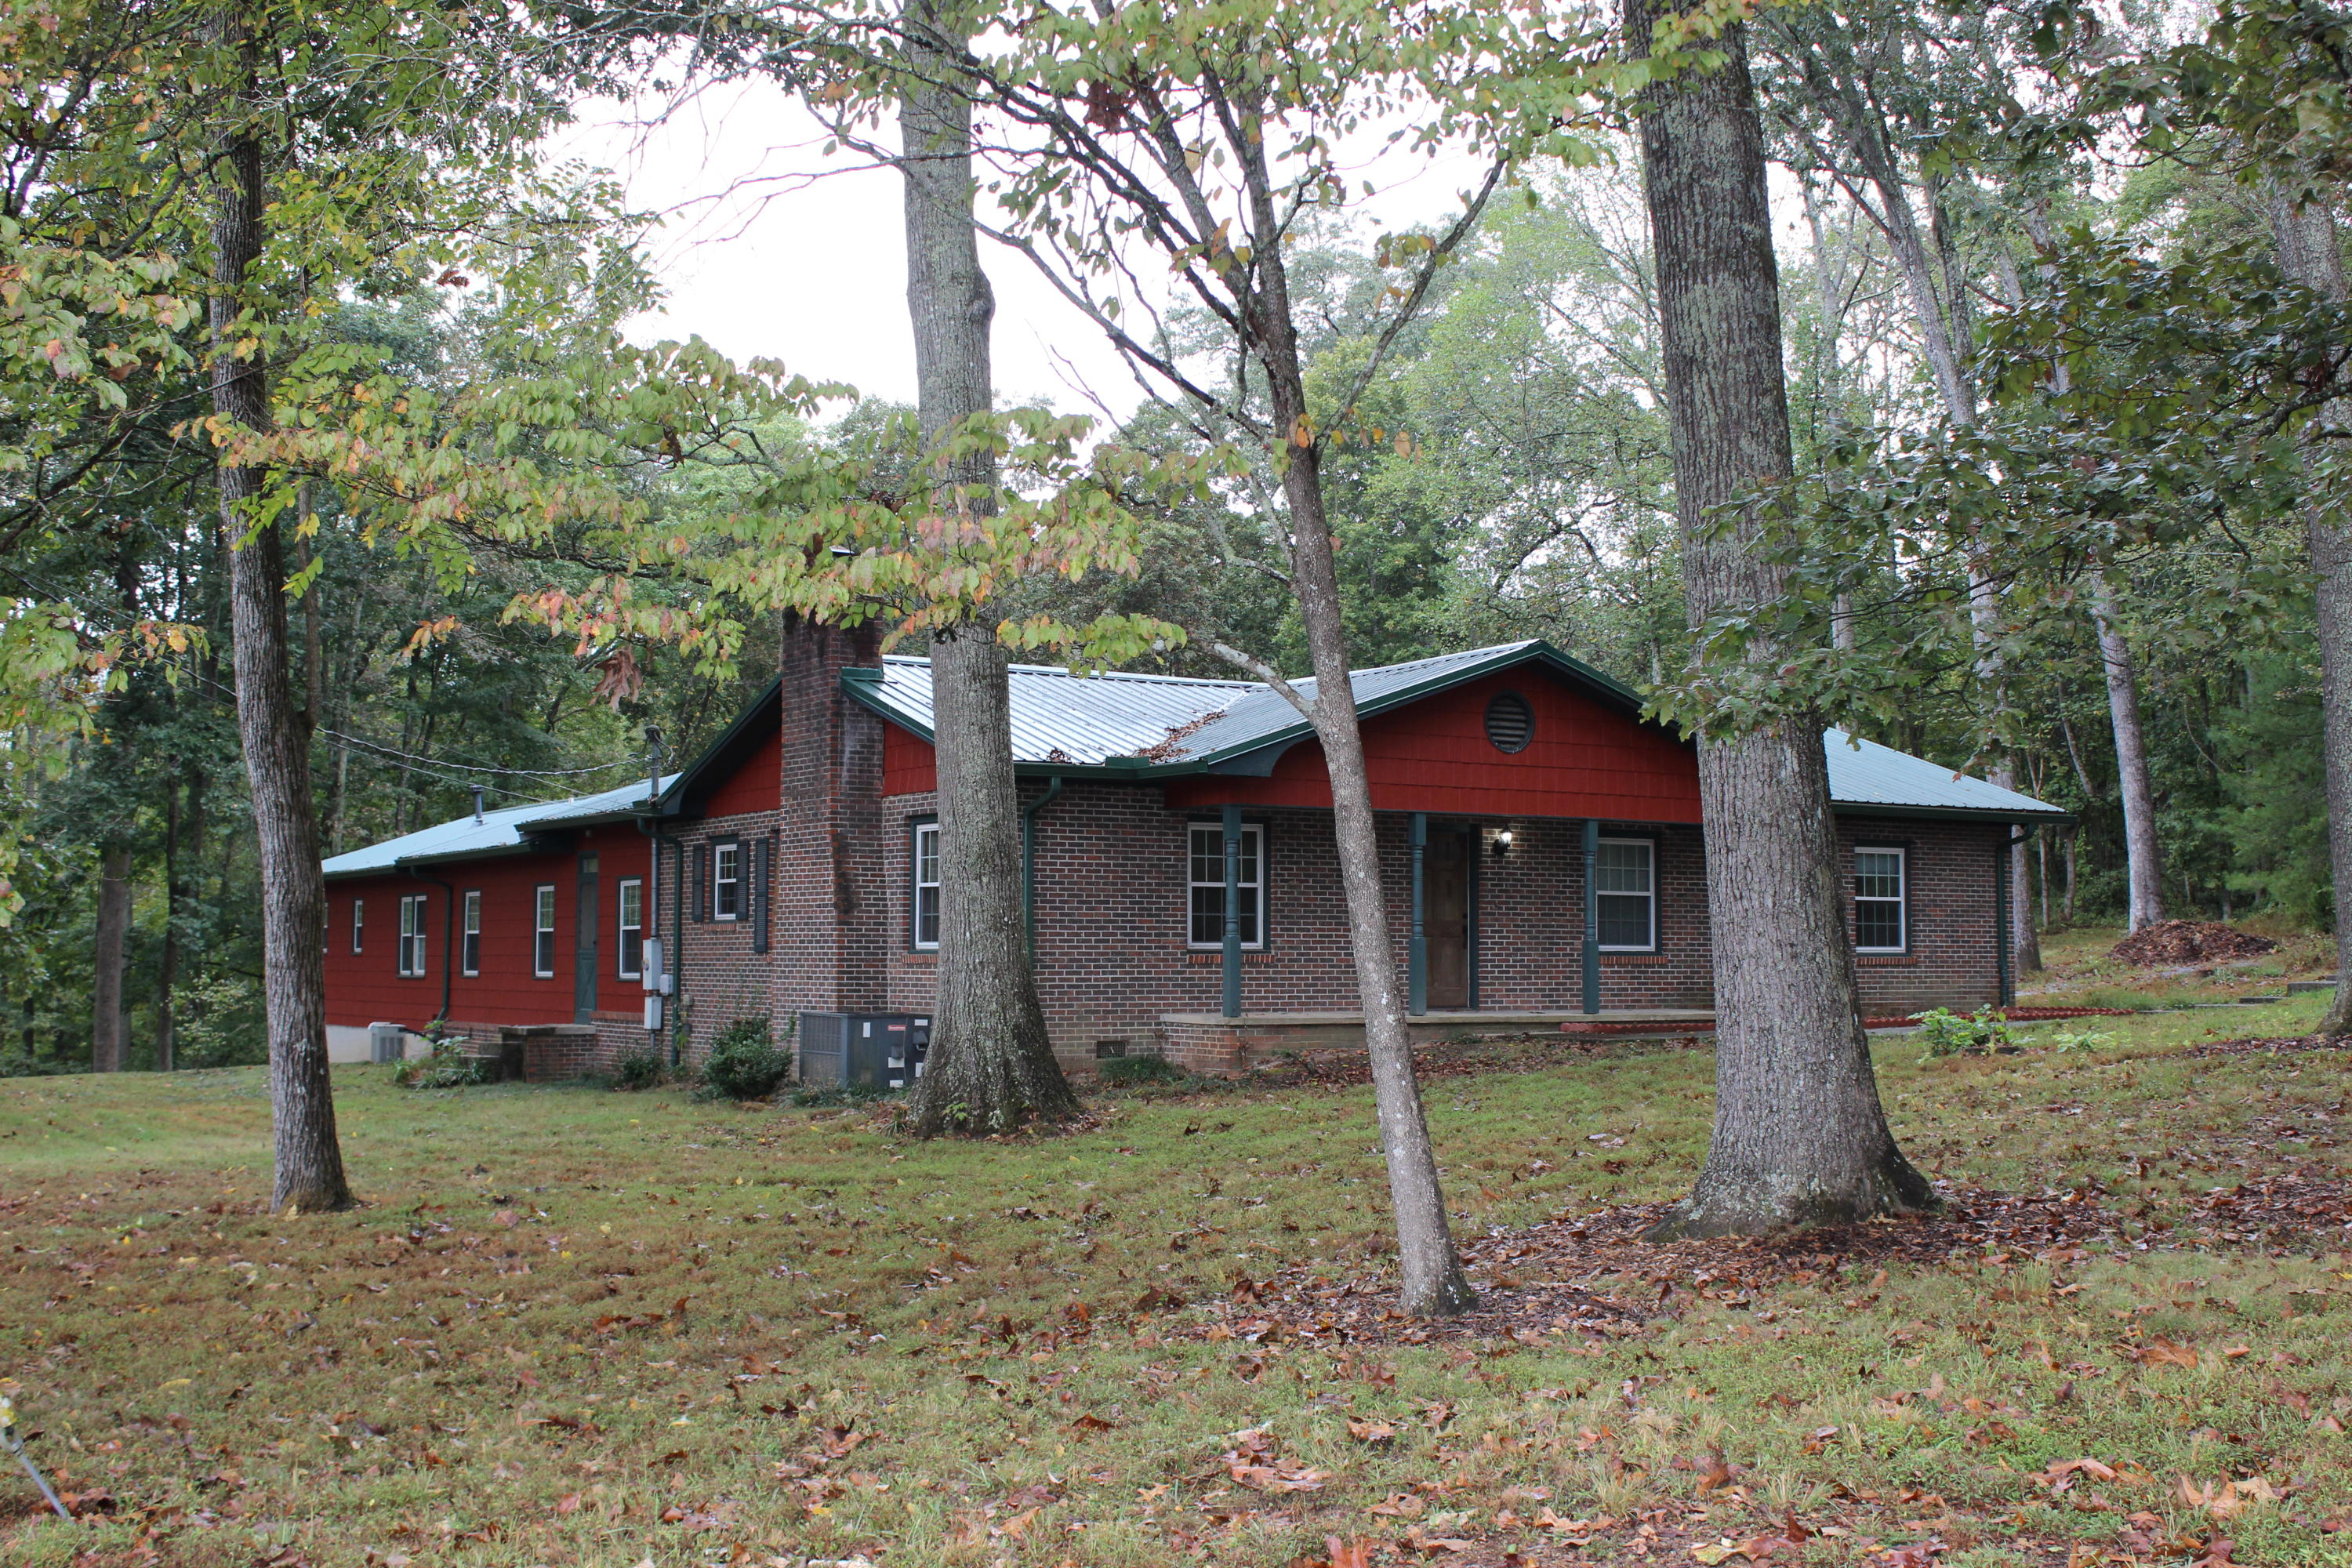 20191008163037932740000000-o Norris anderson county homes for sale